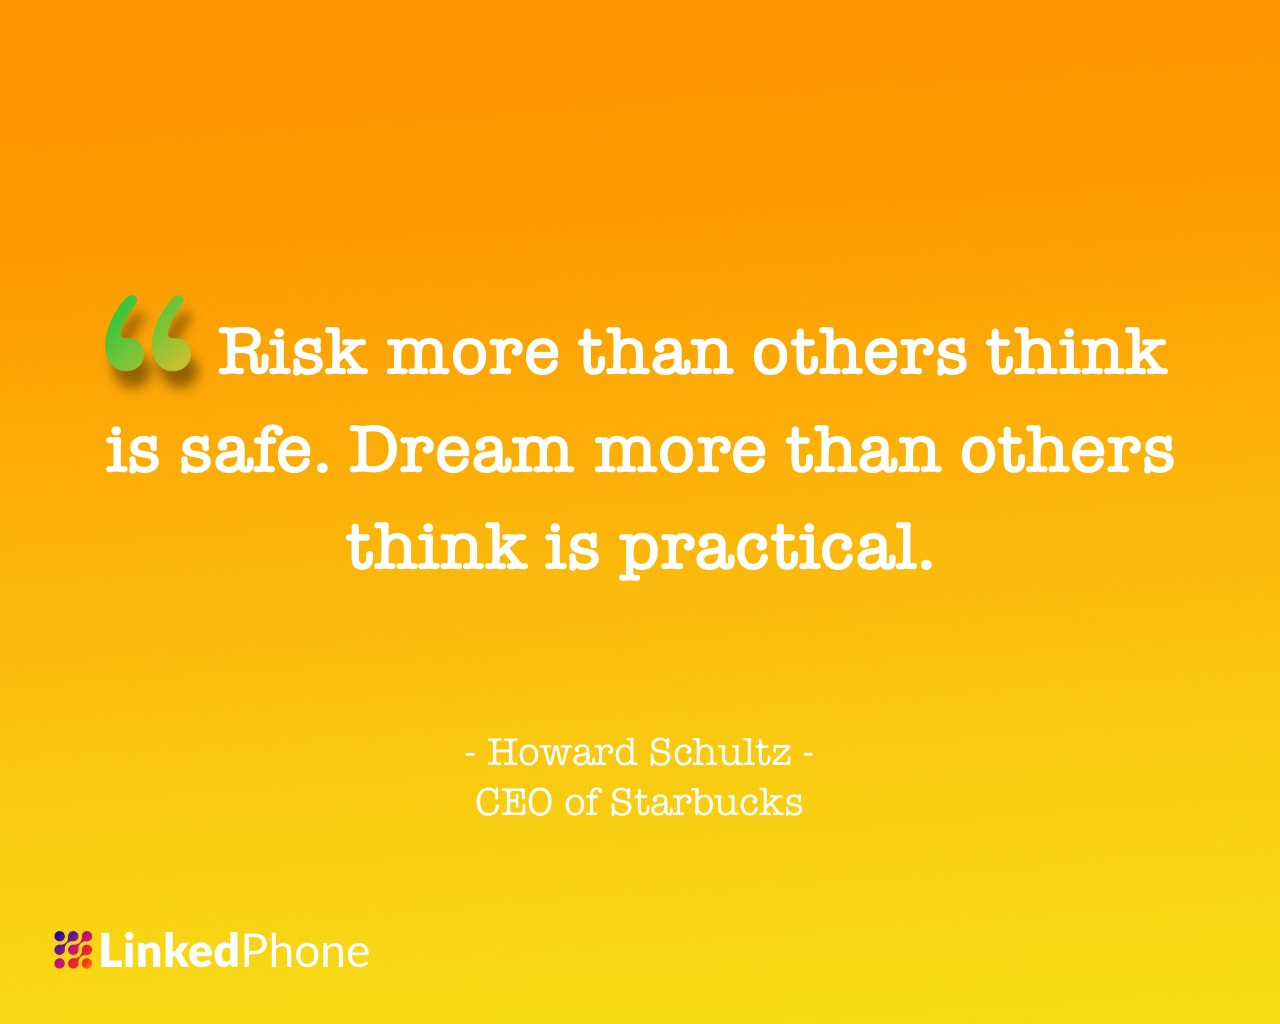 Howard Schultz - Motivational Inspirational Quotes and Sayings